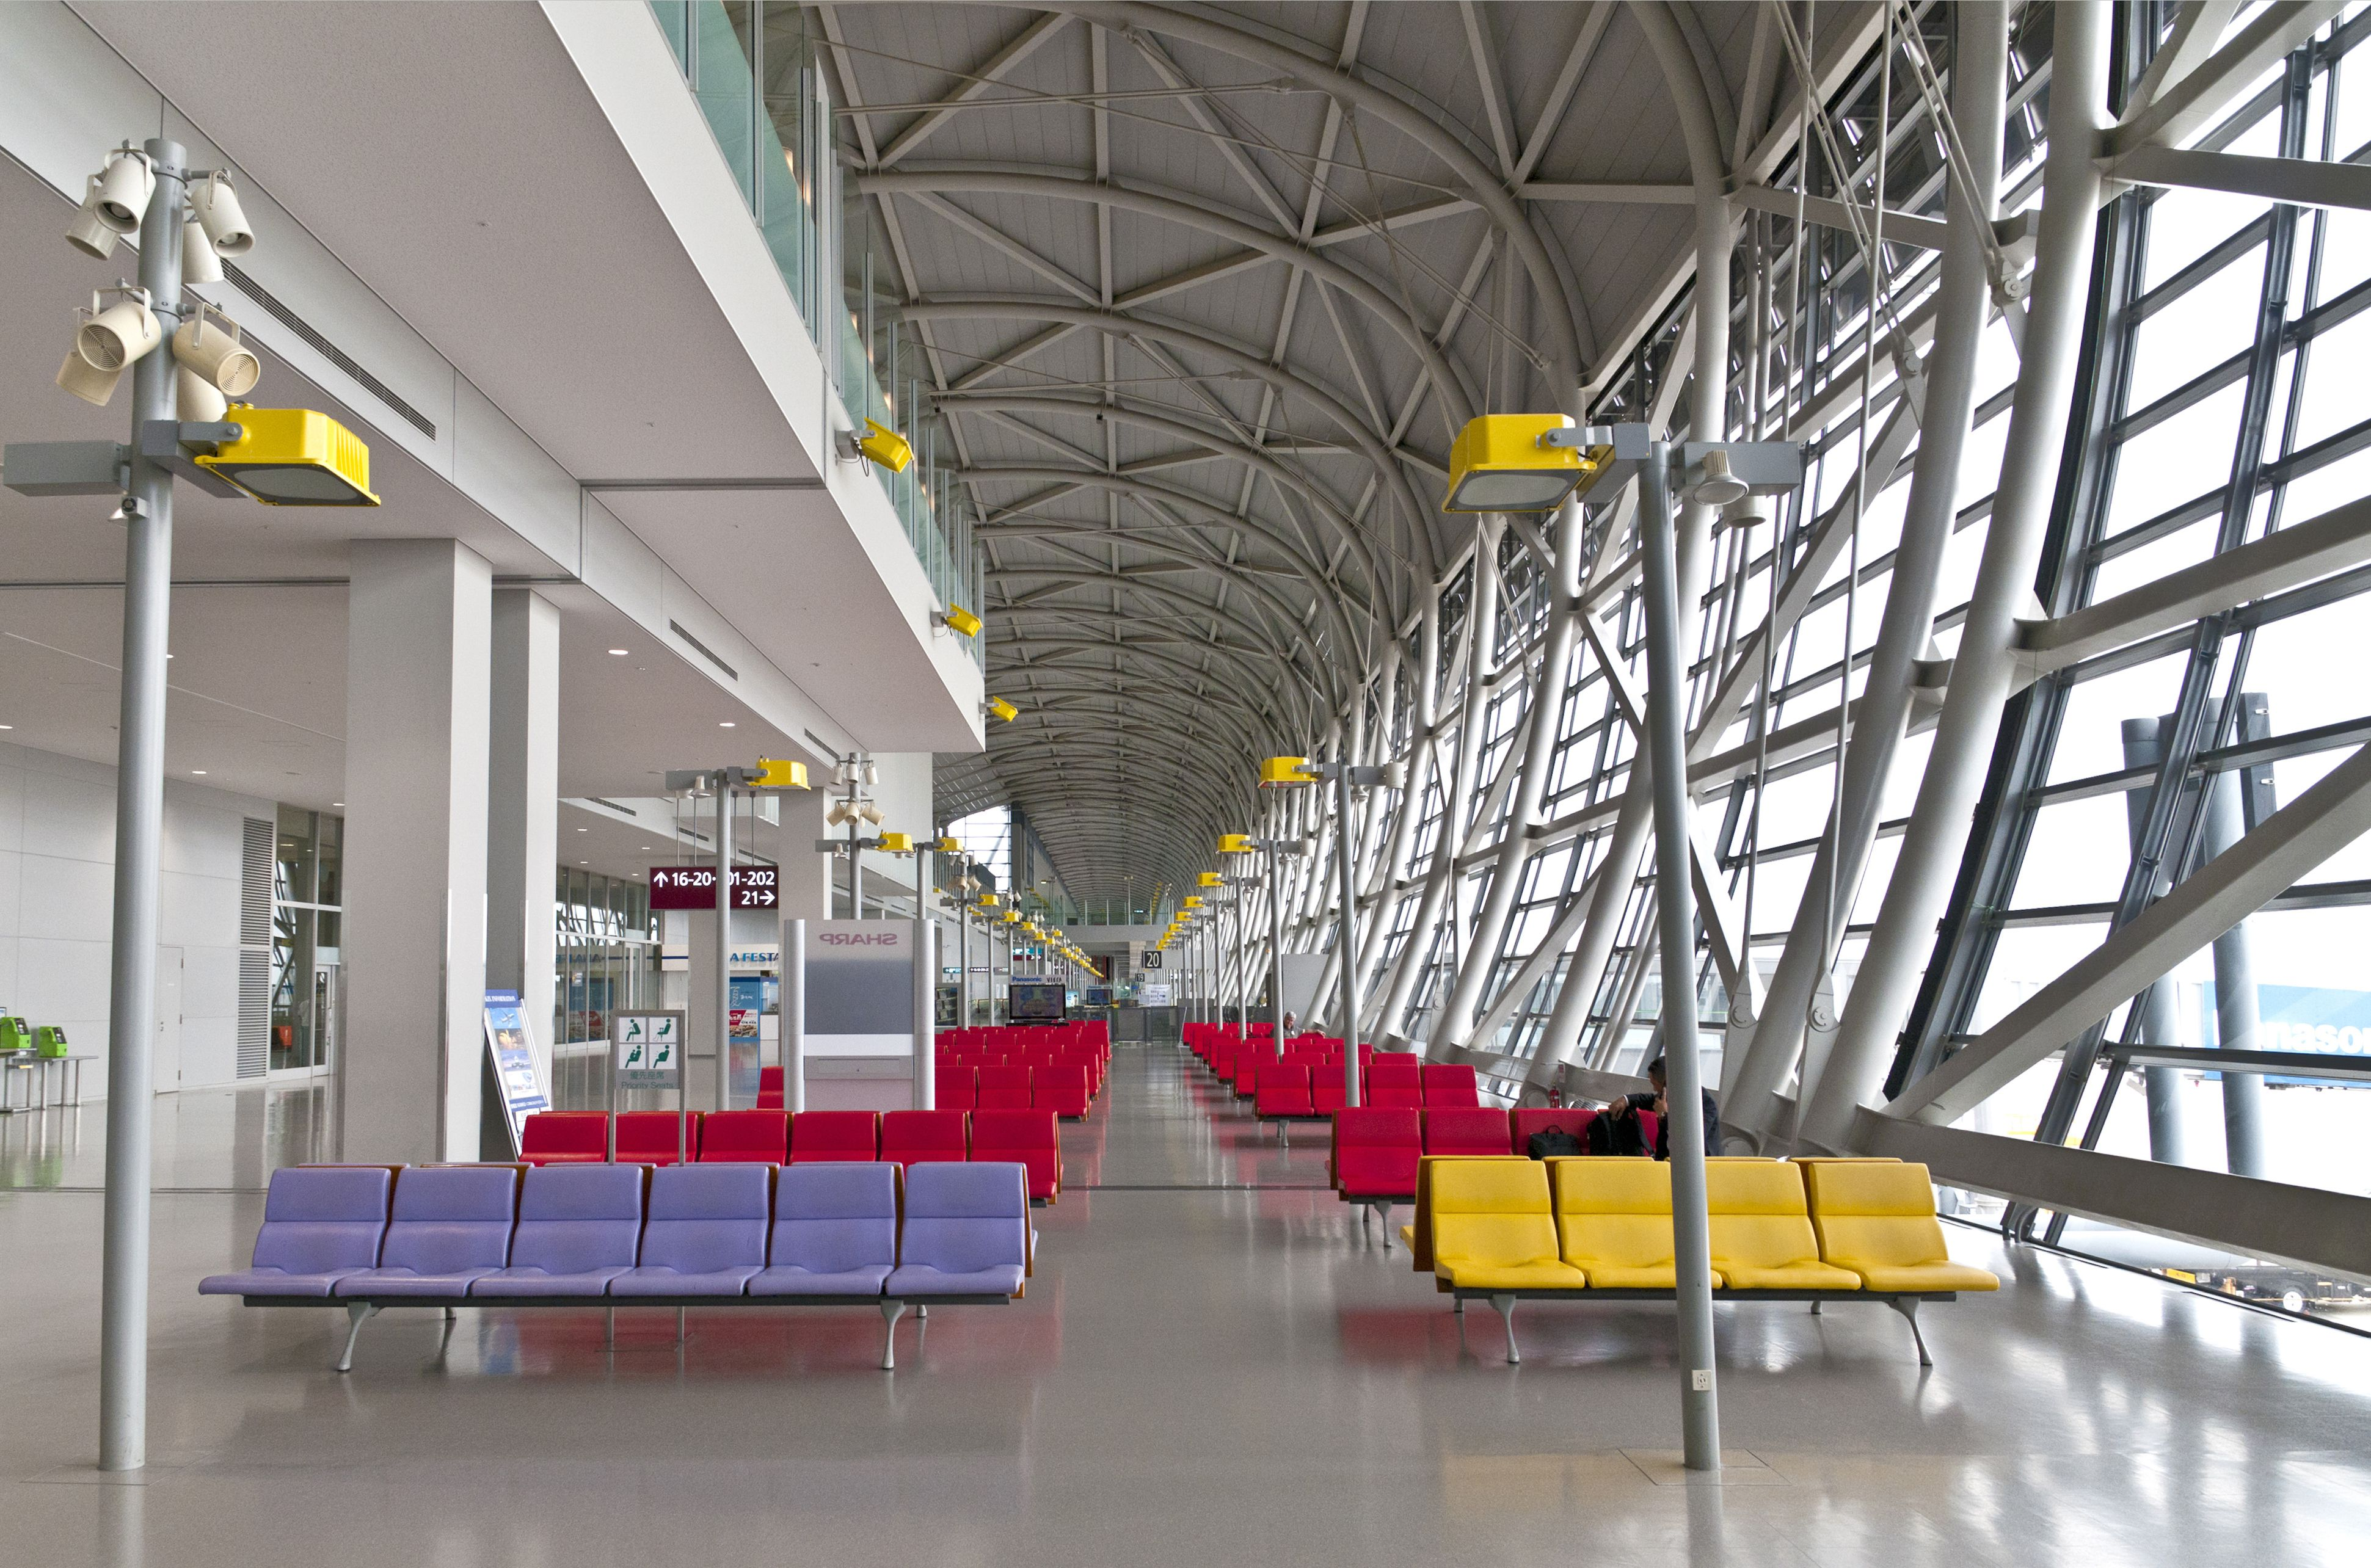 airport terminal seats (blue, red, and yellow) amidst a framework of glass and triangular patterns